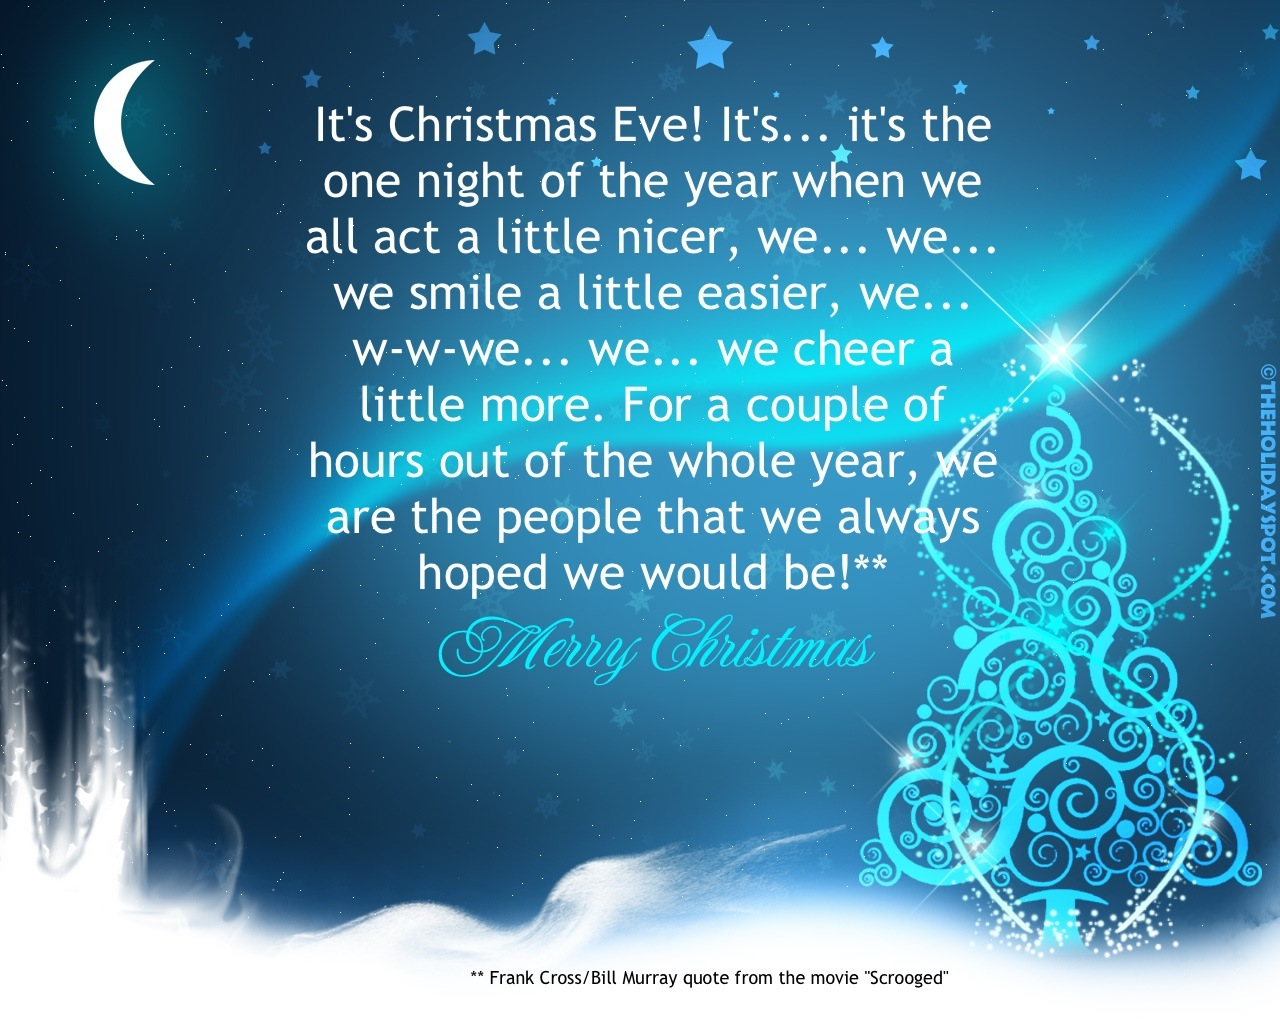 Christmas Eve quote #2